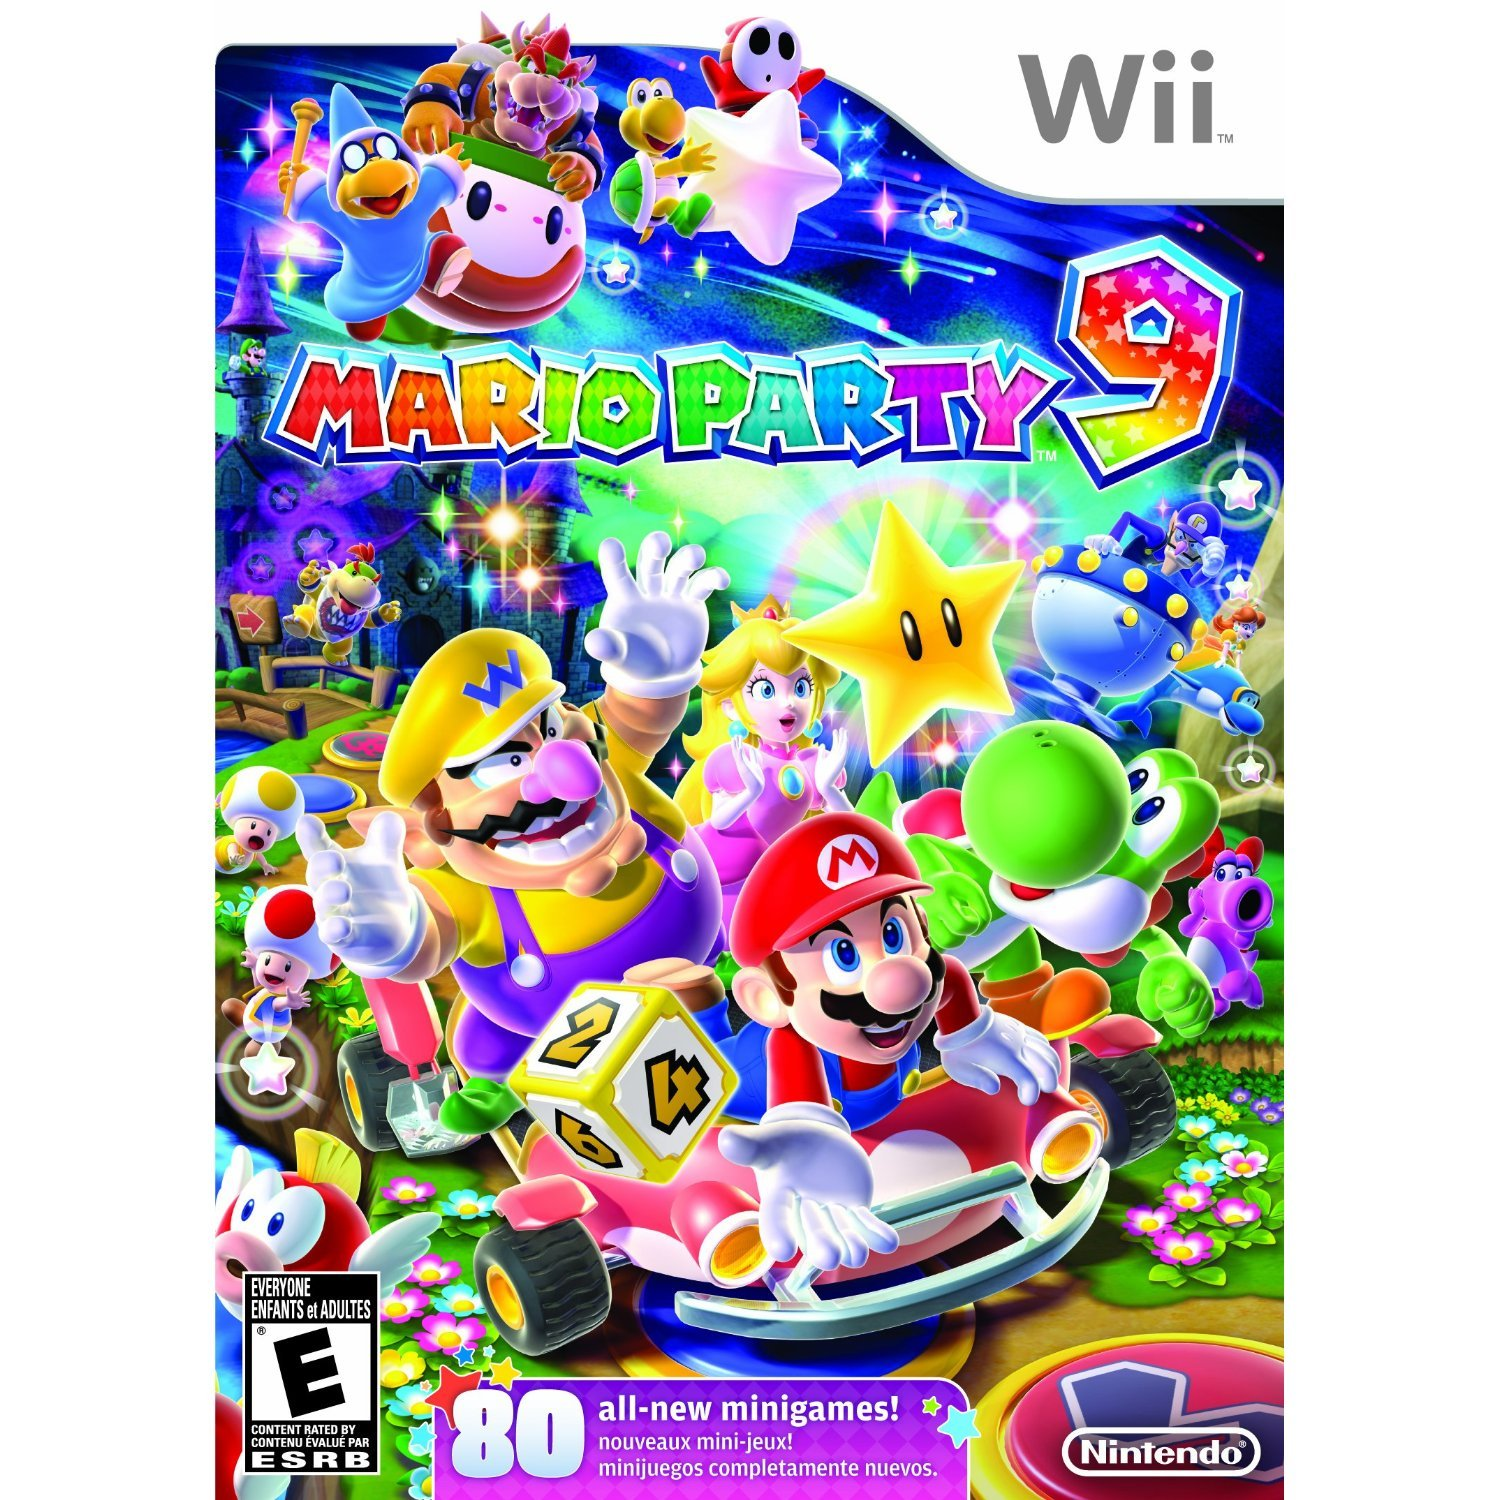 Mario Party 9 (Wii) Review 2